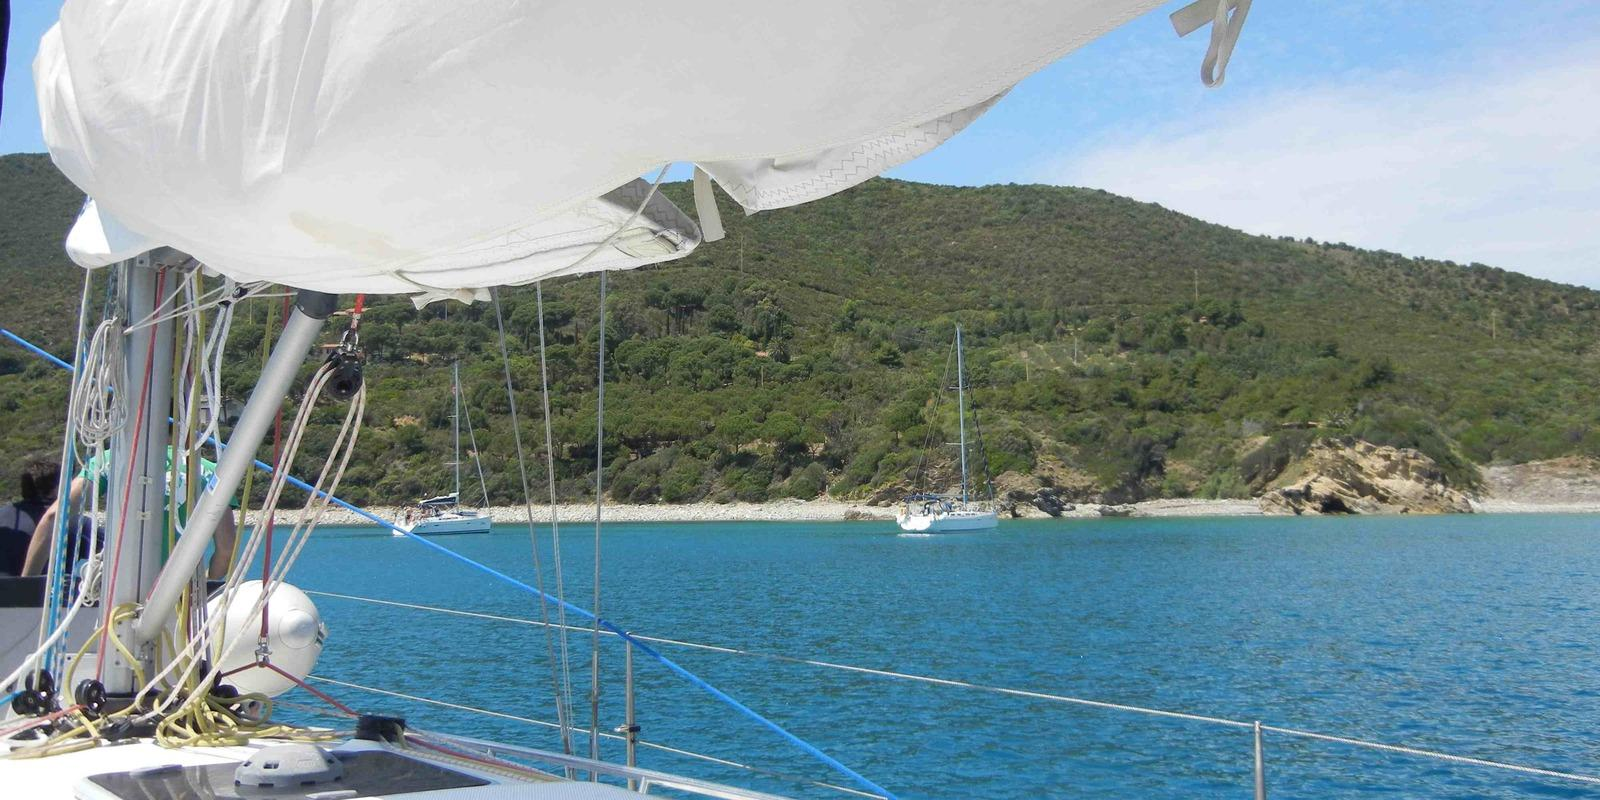 ElbaVeliamo: Sea, Relax and Sail between Elba and Capraia